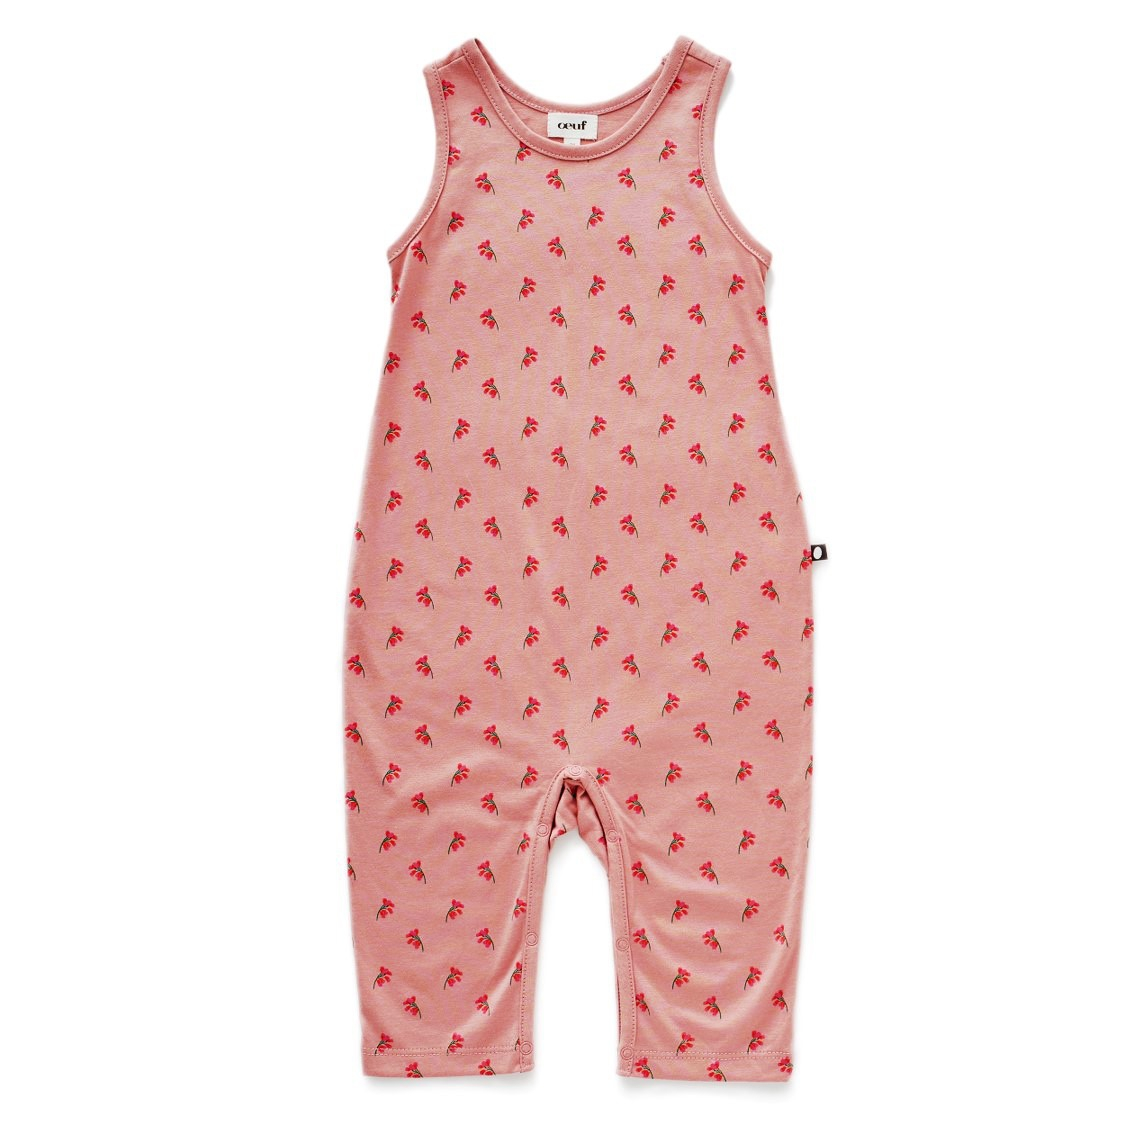 combishort bebe fille rose oeuf nyc